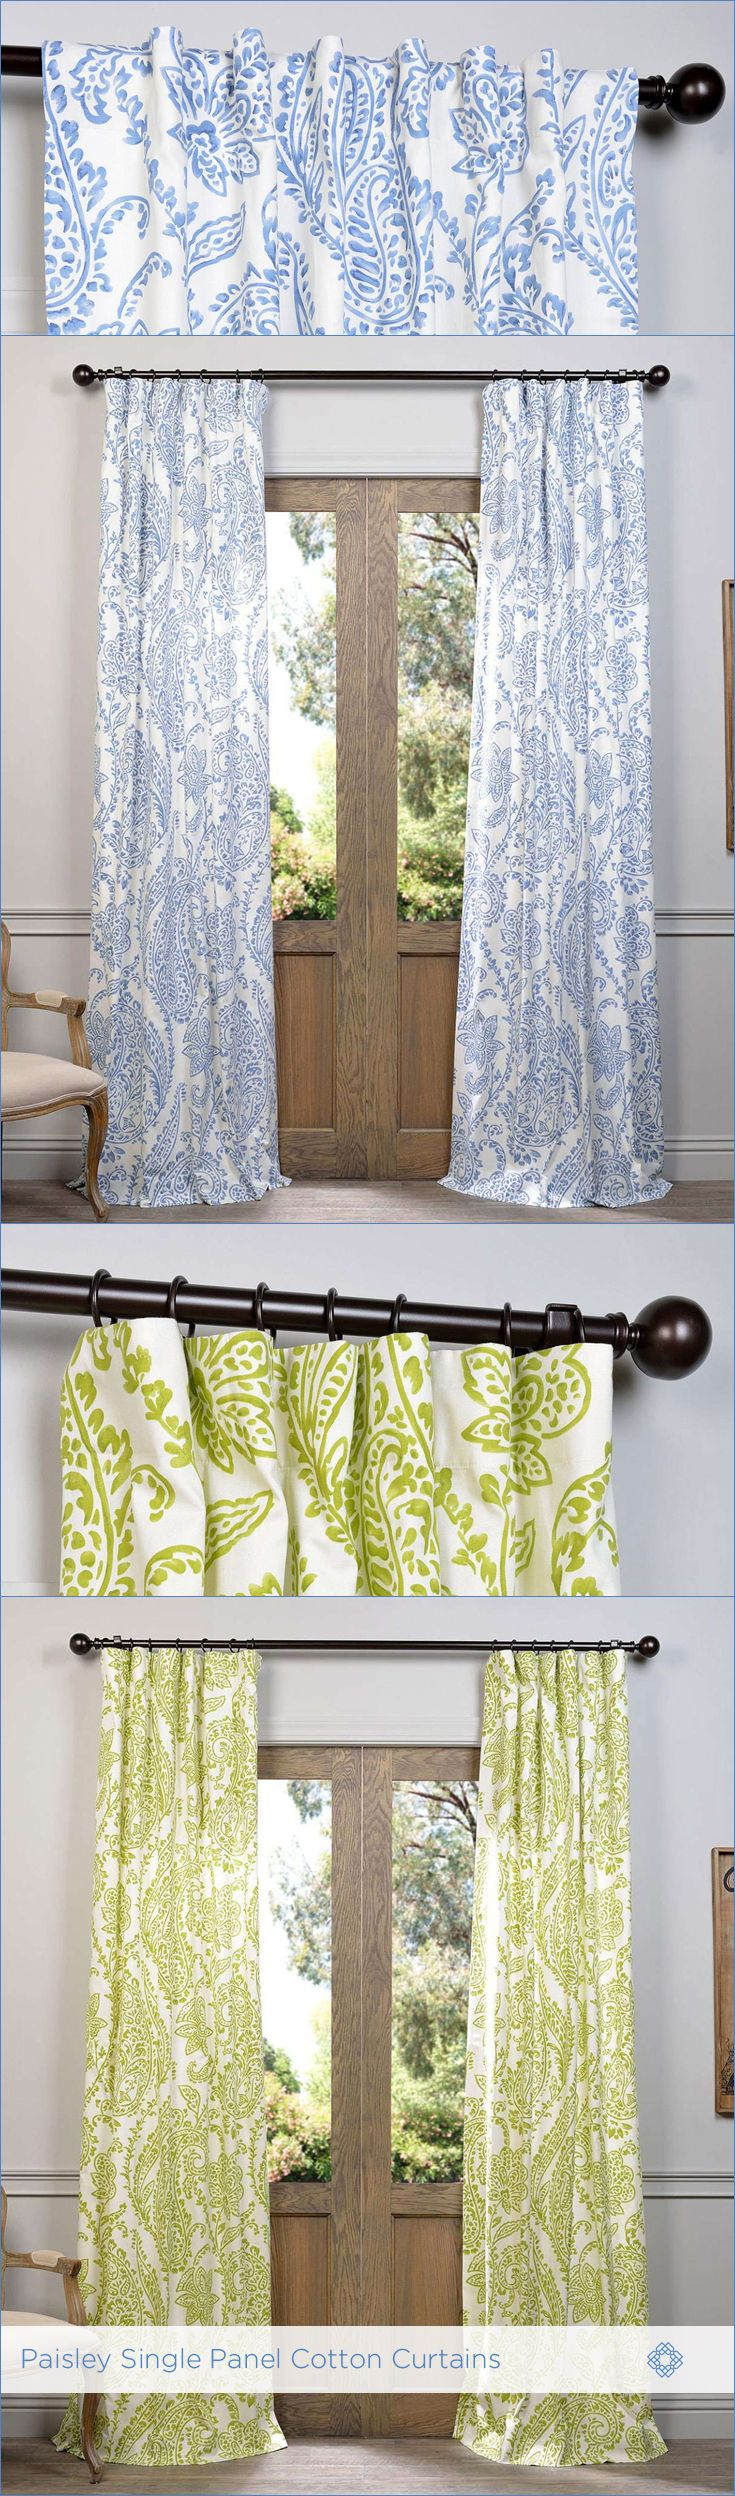 40 best images about curtains window treatments on for Window cotton design